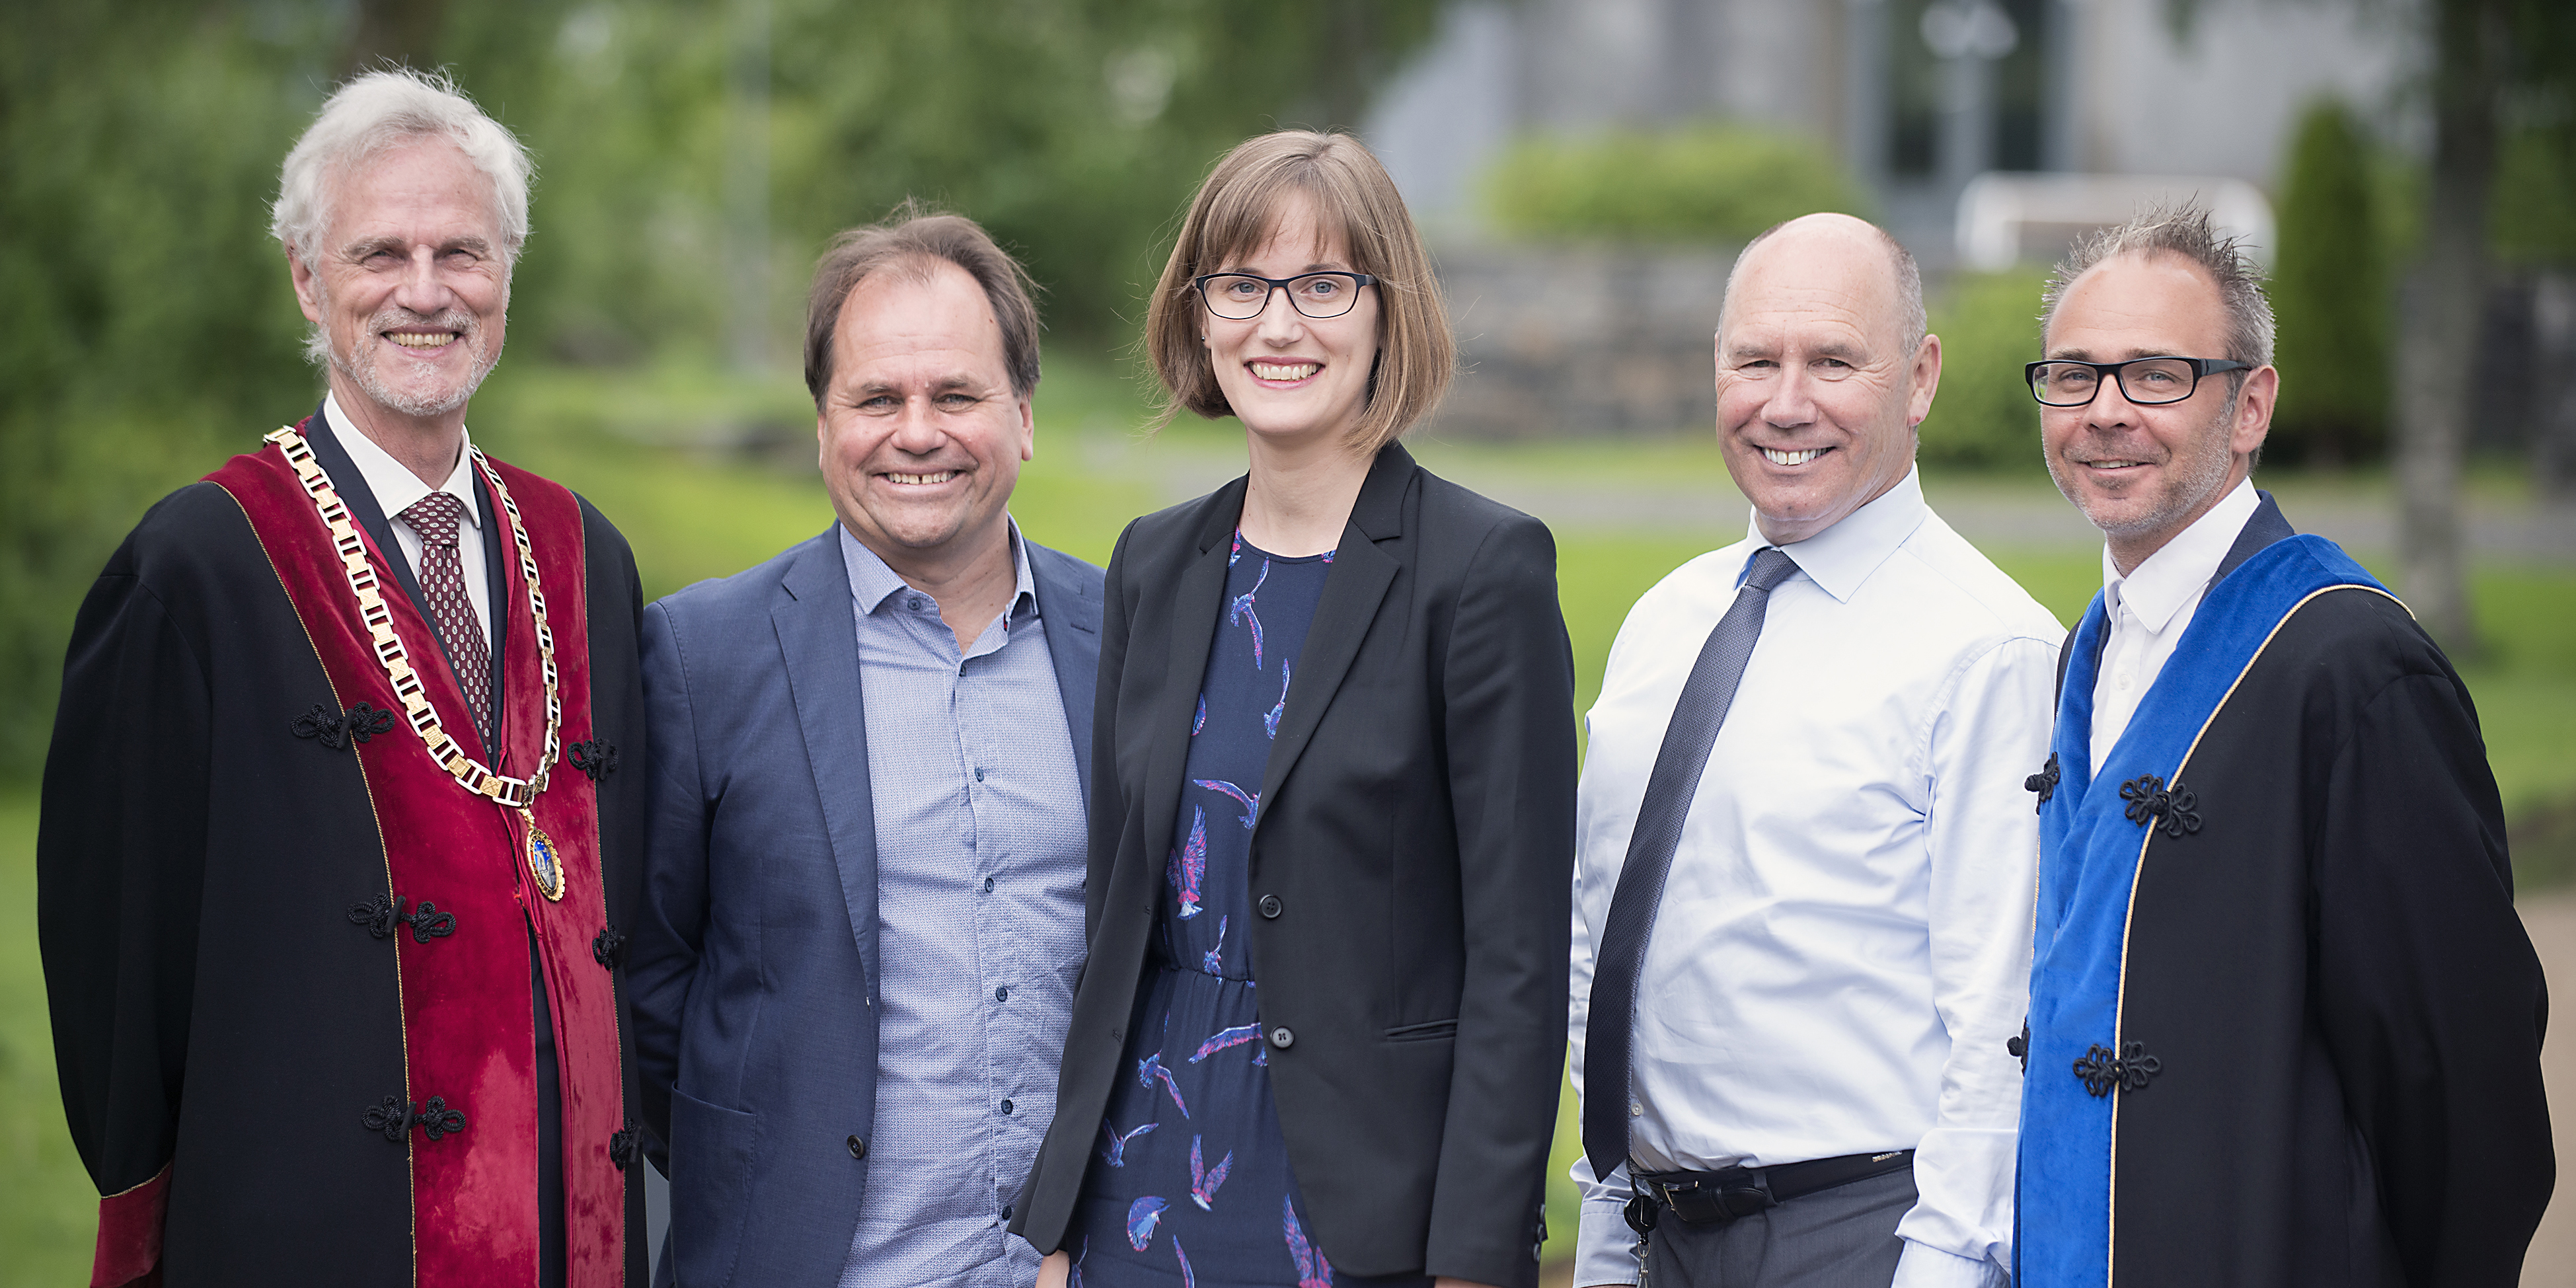 Rector Frøystein Gjesdal, Professor Bertil Tungodden, Assistant Professor Malin Arve, Professor Tor Wallin Andreassen and Professor Helge Thorbjørnsen. Photo: Odd Mehus